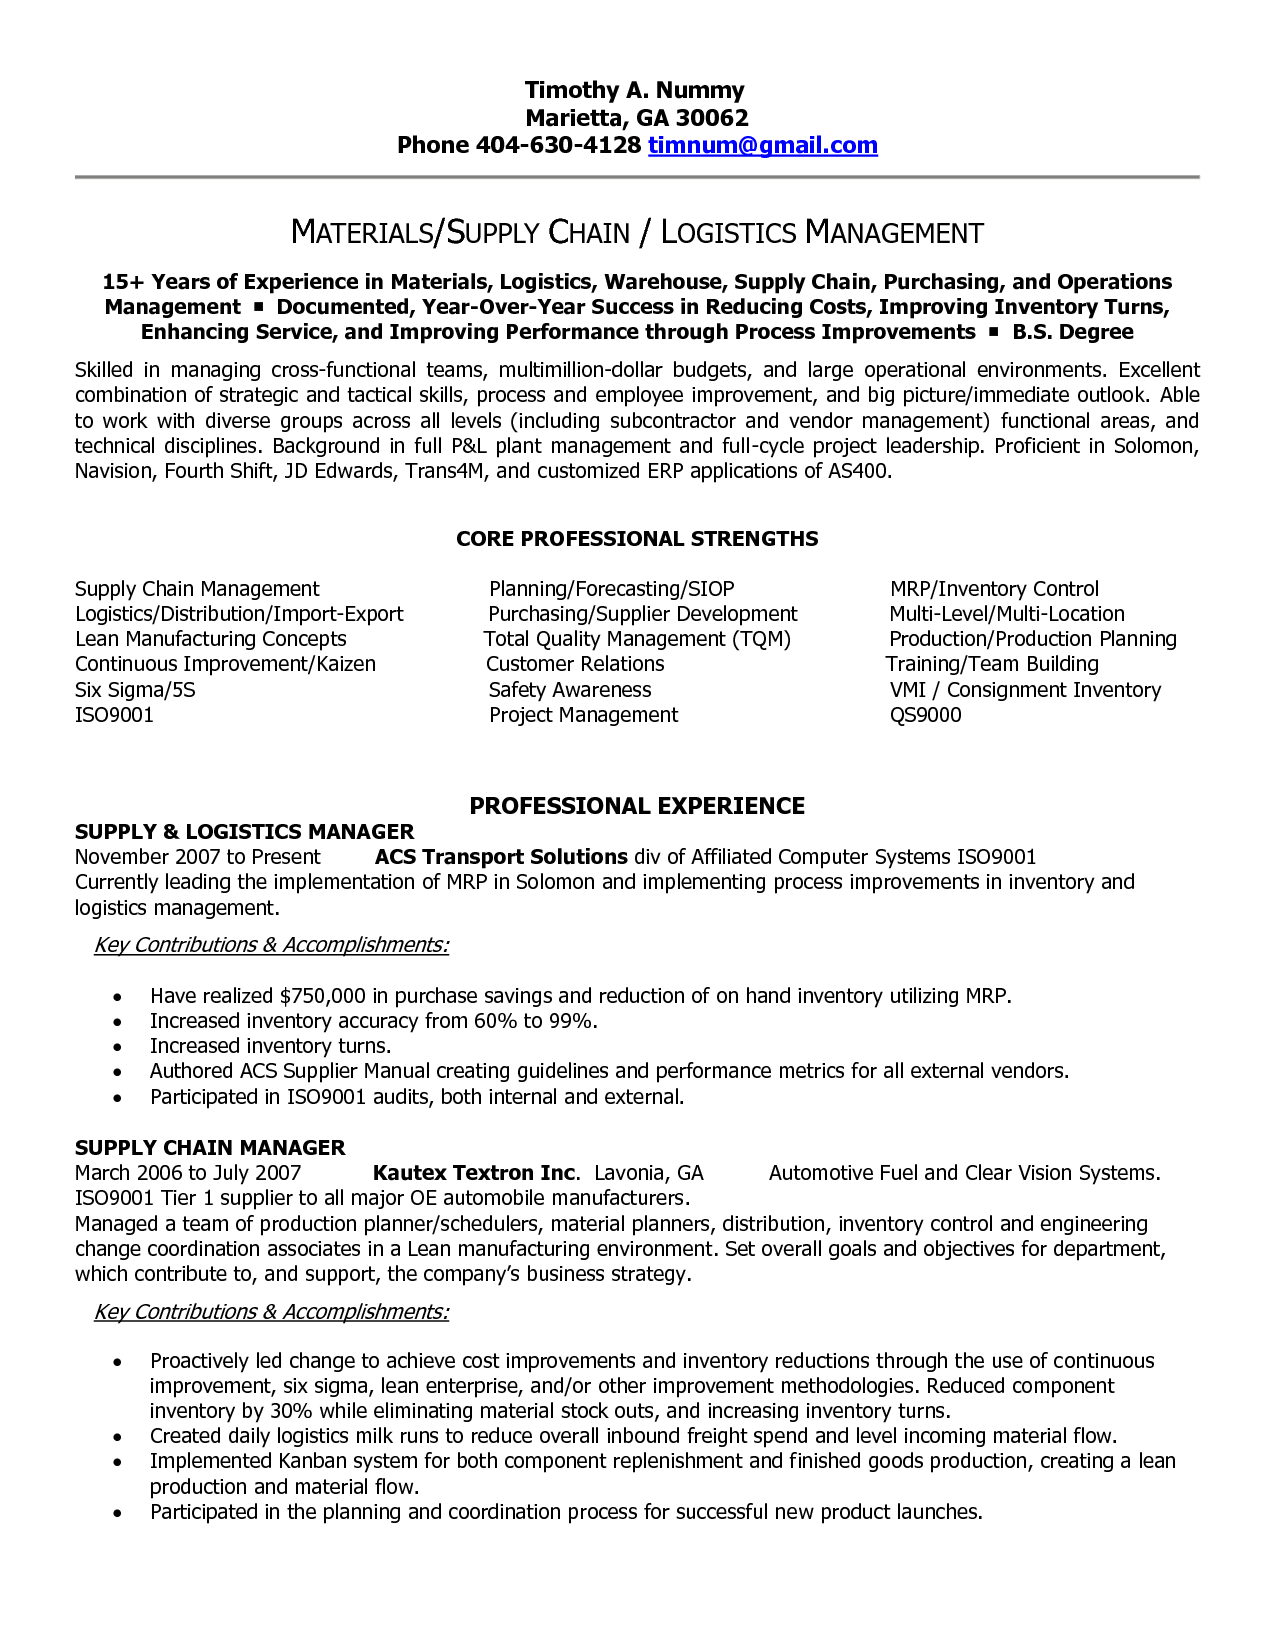 supply chain resume templates supply chain manager in